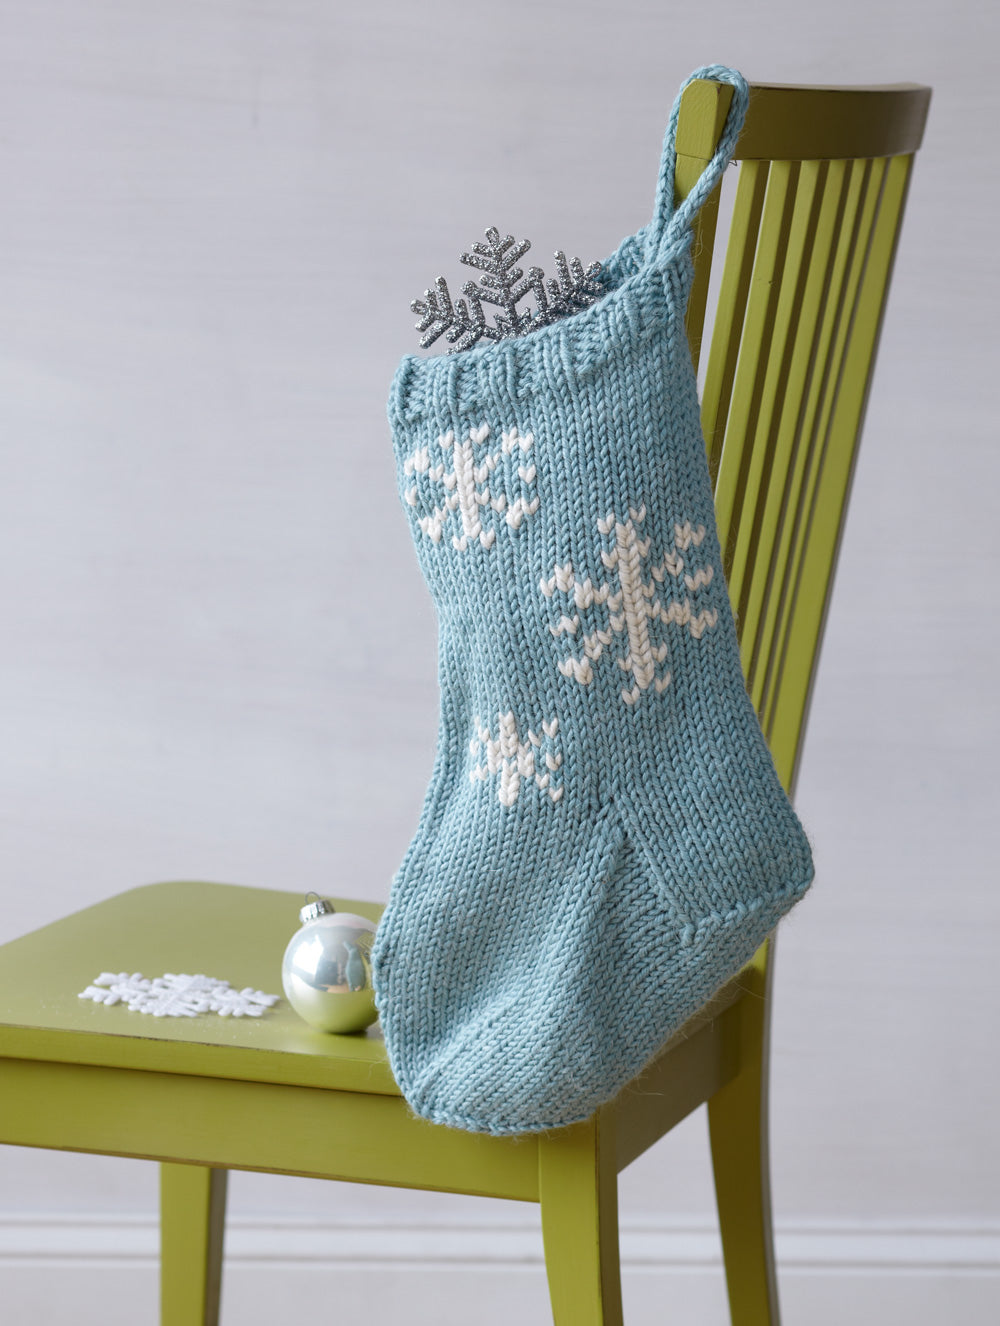 Elegant blue and white Christmas stocking knitting pattern using duplicate stitch